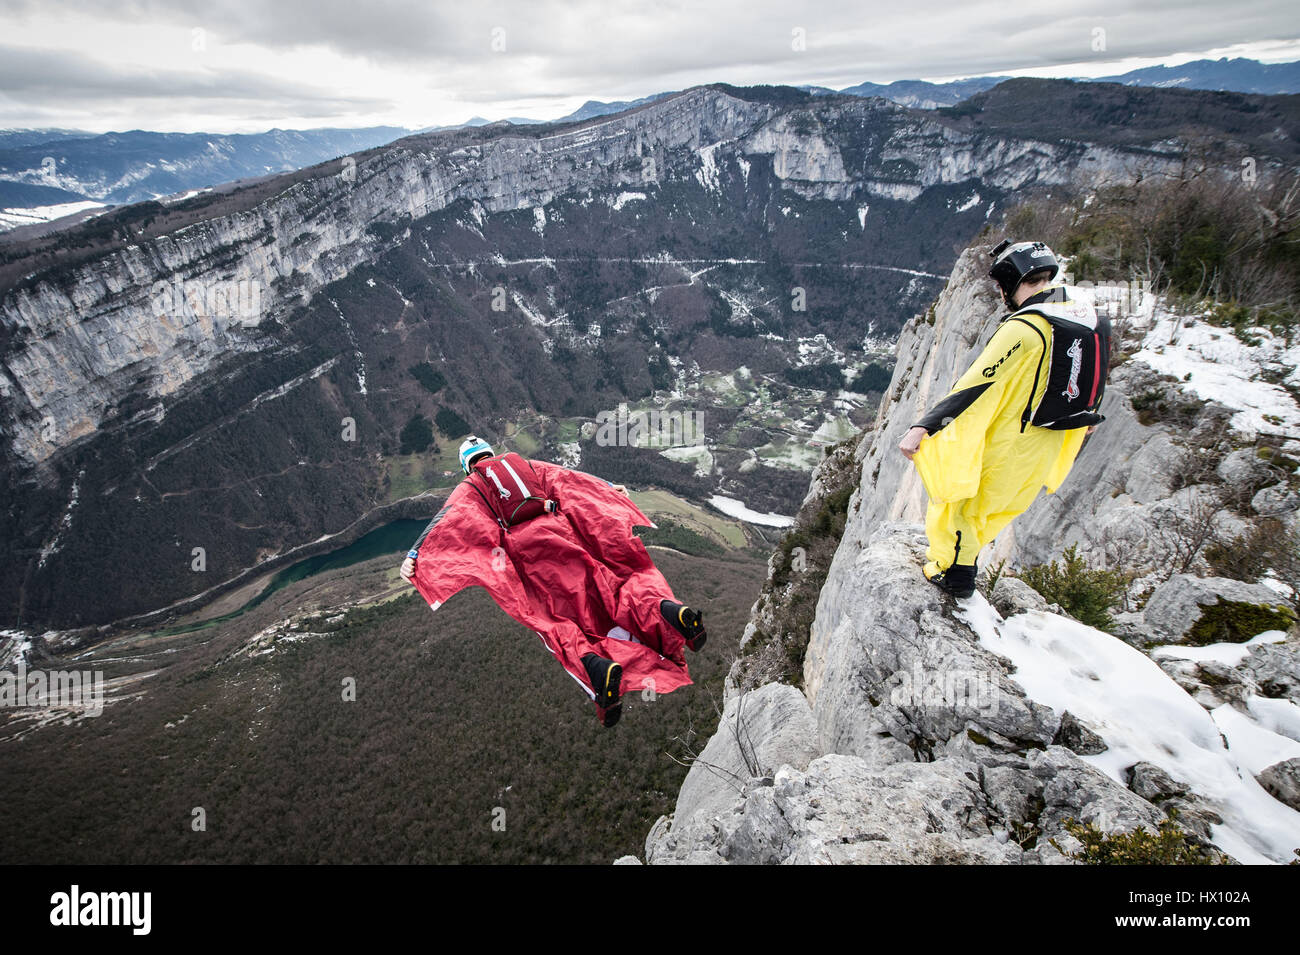 Base-jumping in the mountains - Stock Image